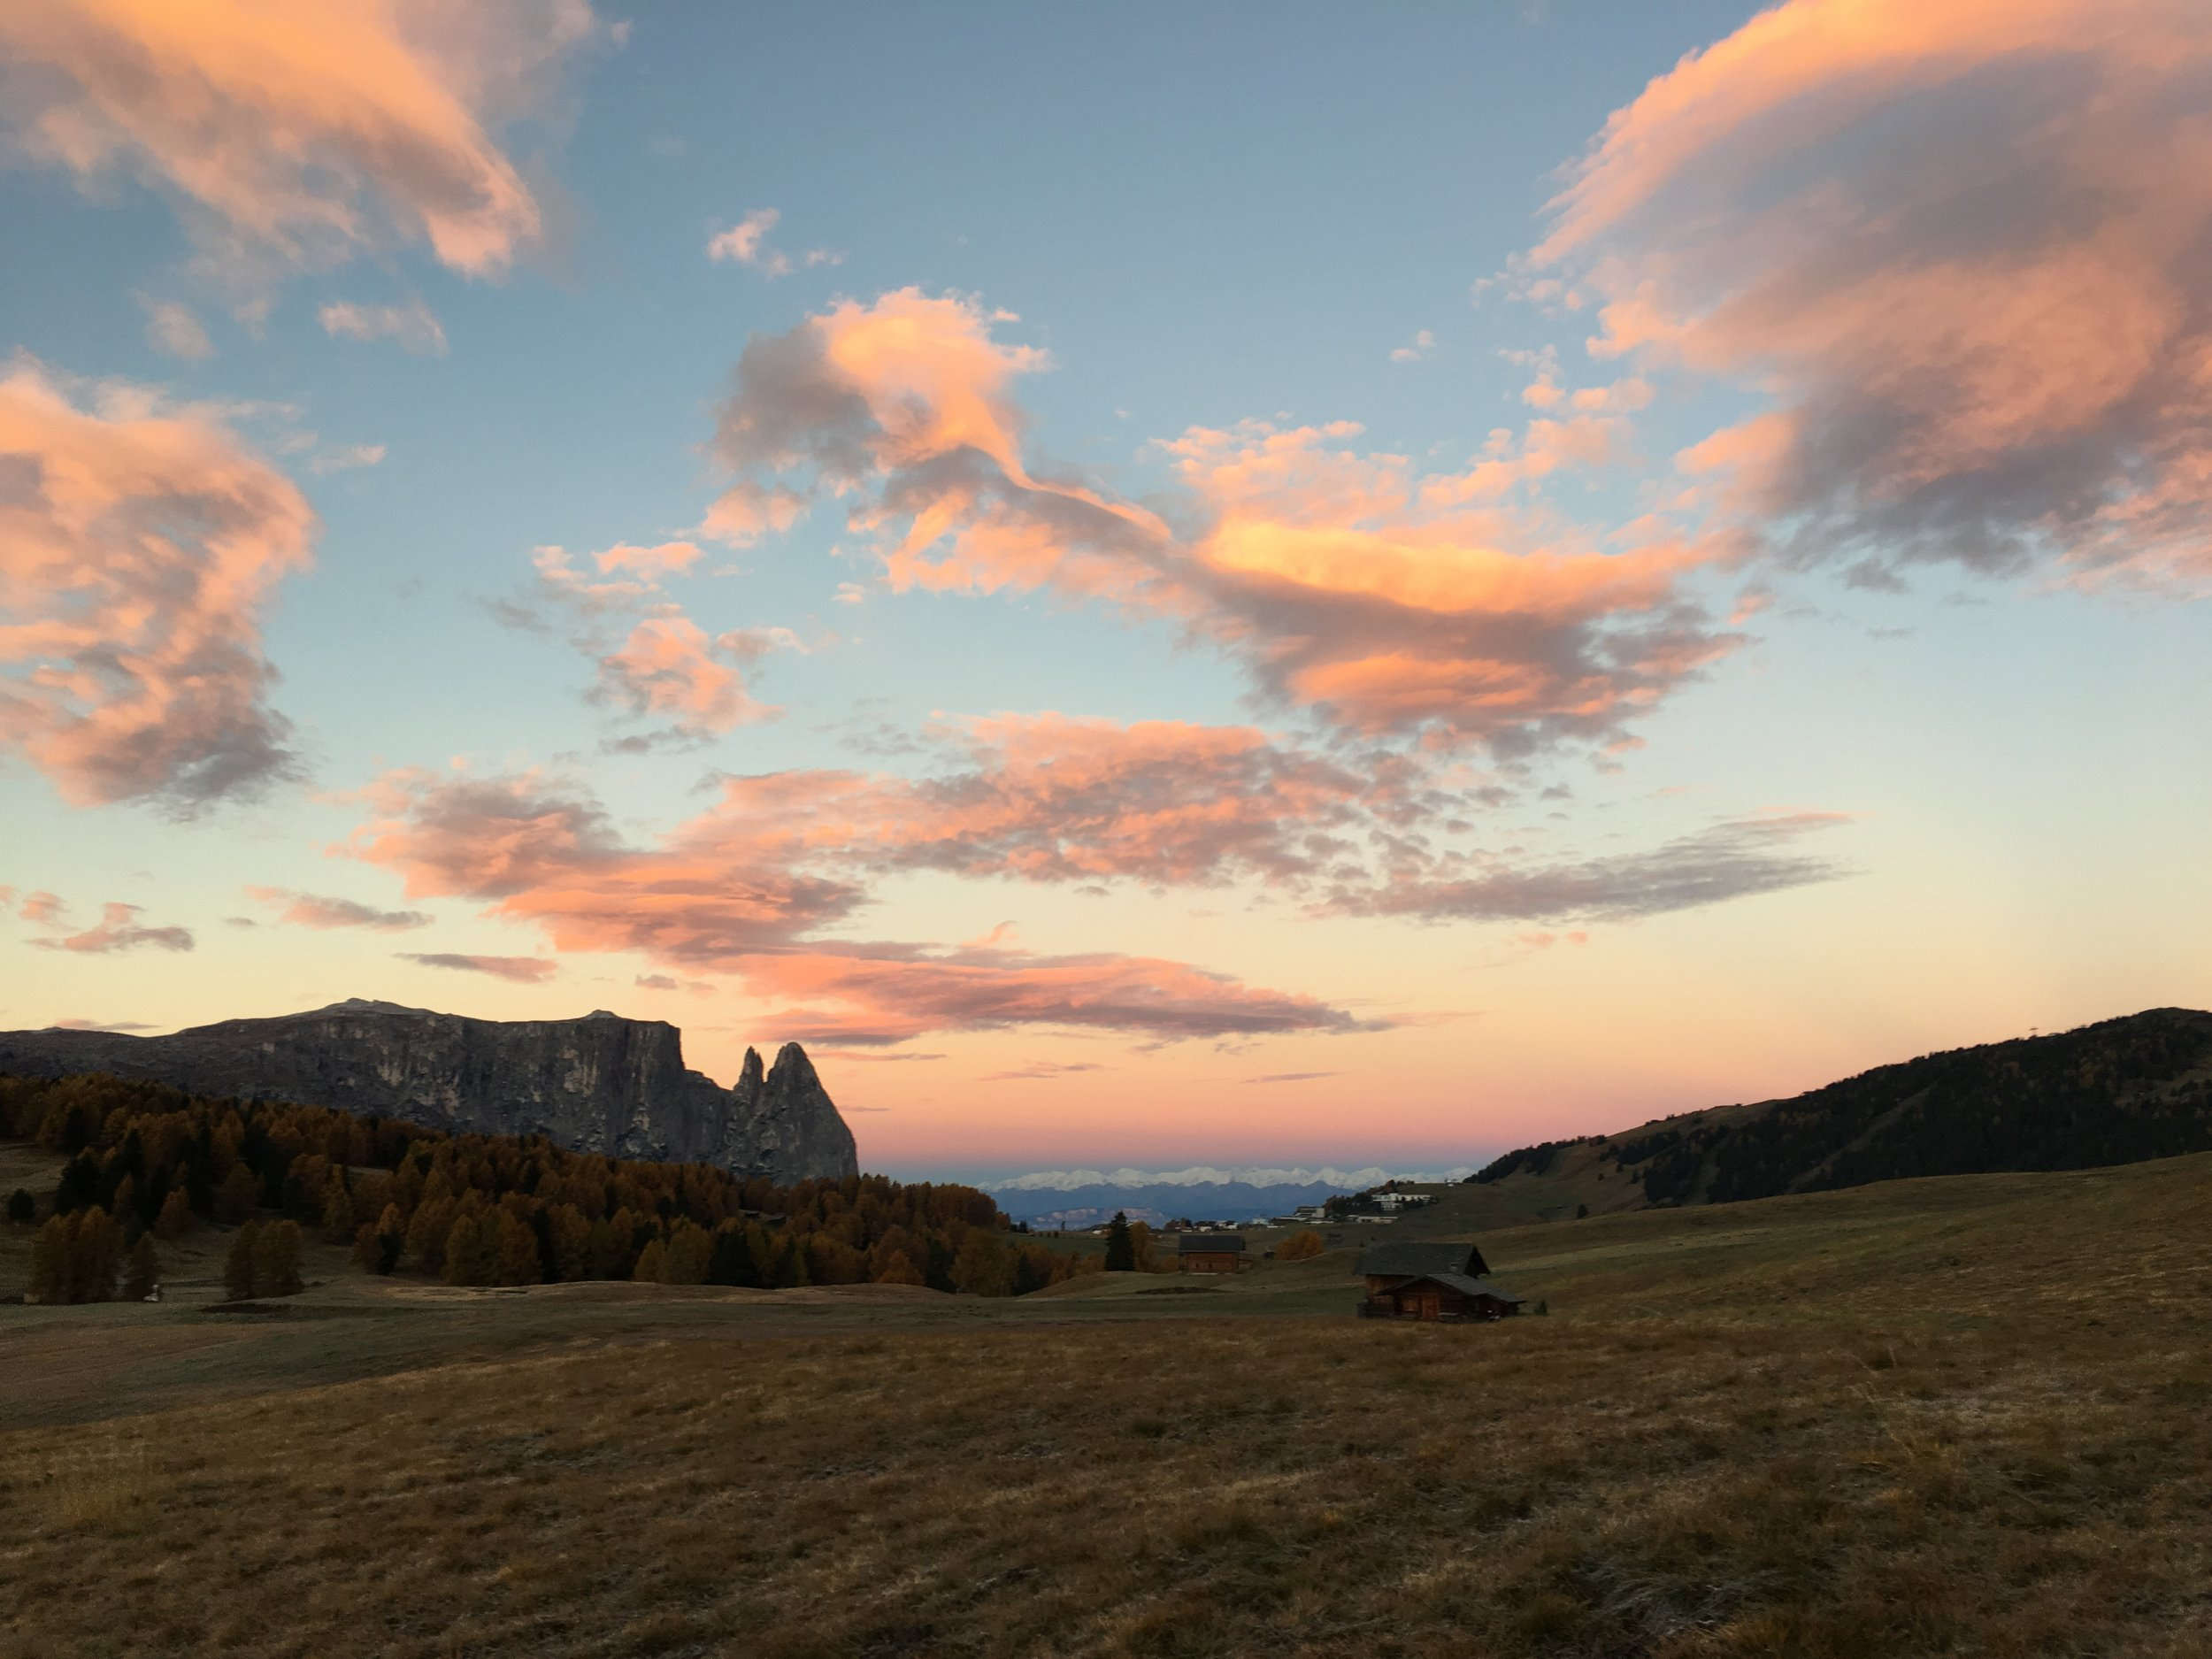 The cotton candy clouds over the Dolomites.